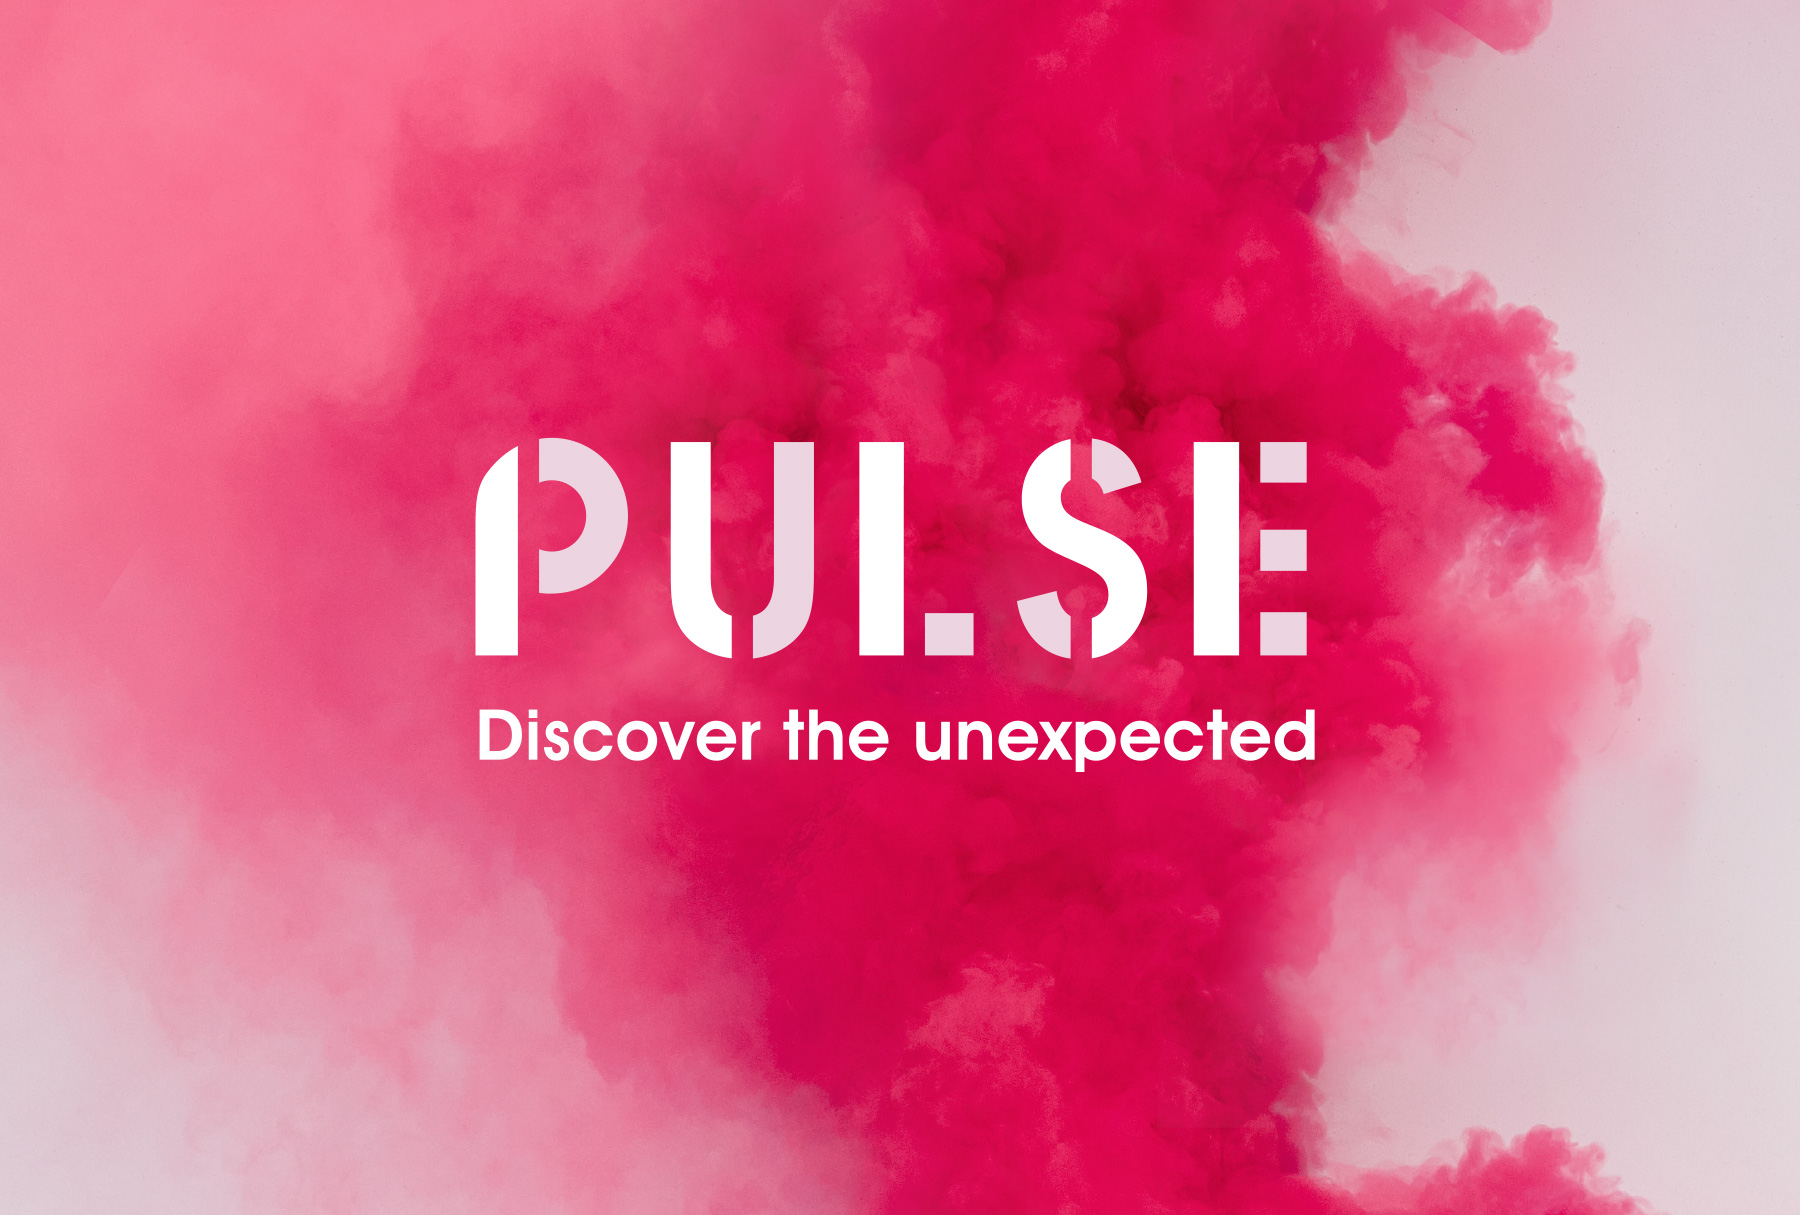 PULSE - Discover the unexpected' written in white with a thick cloud of pink coloured smoke